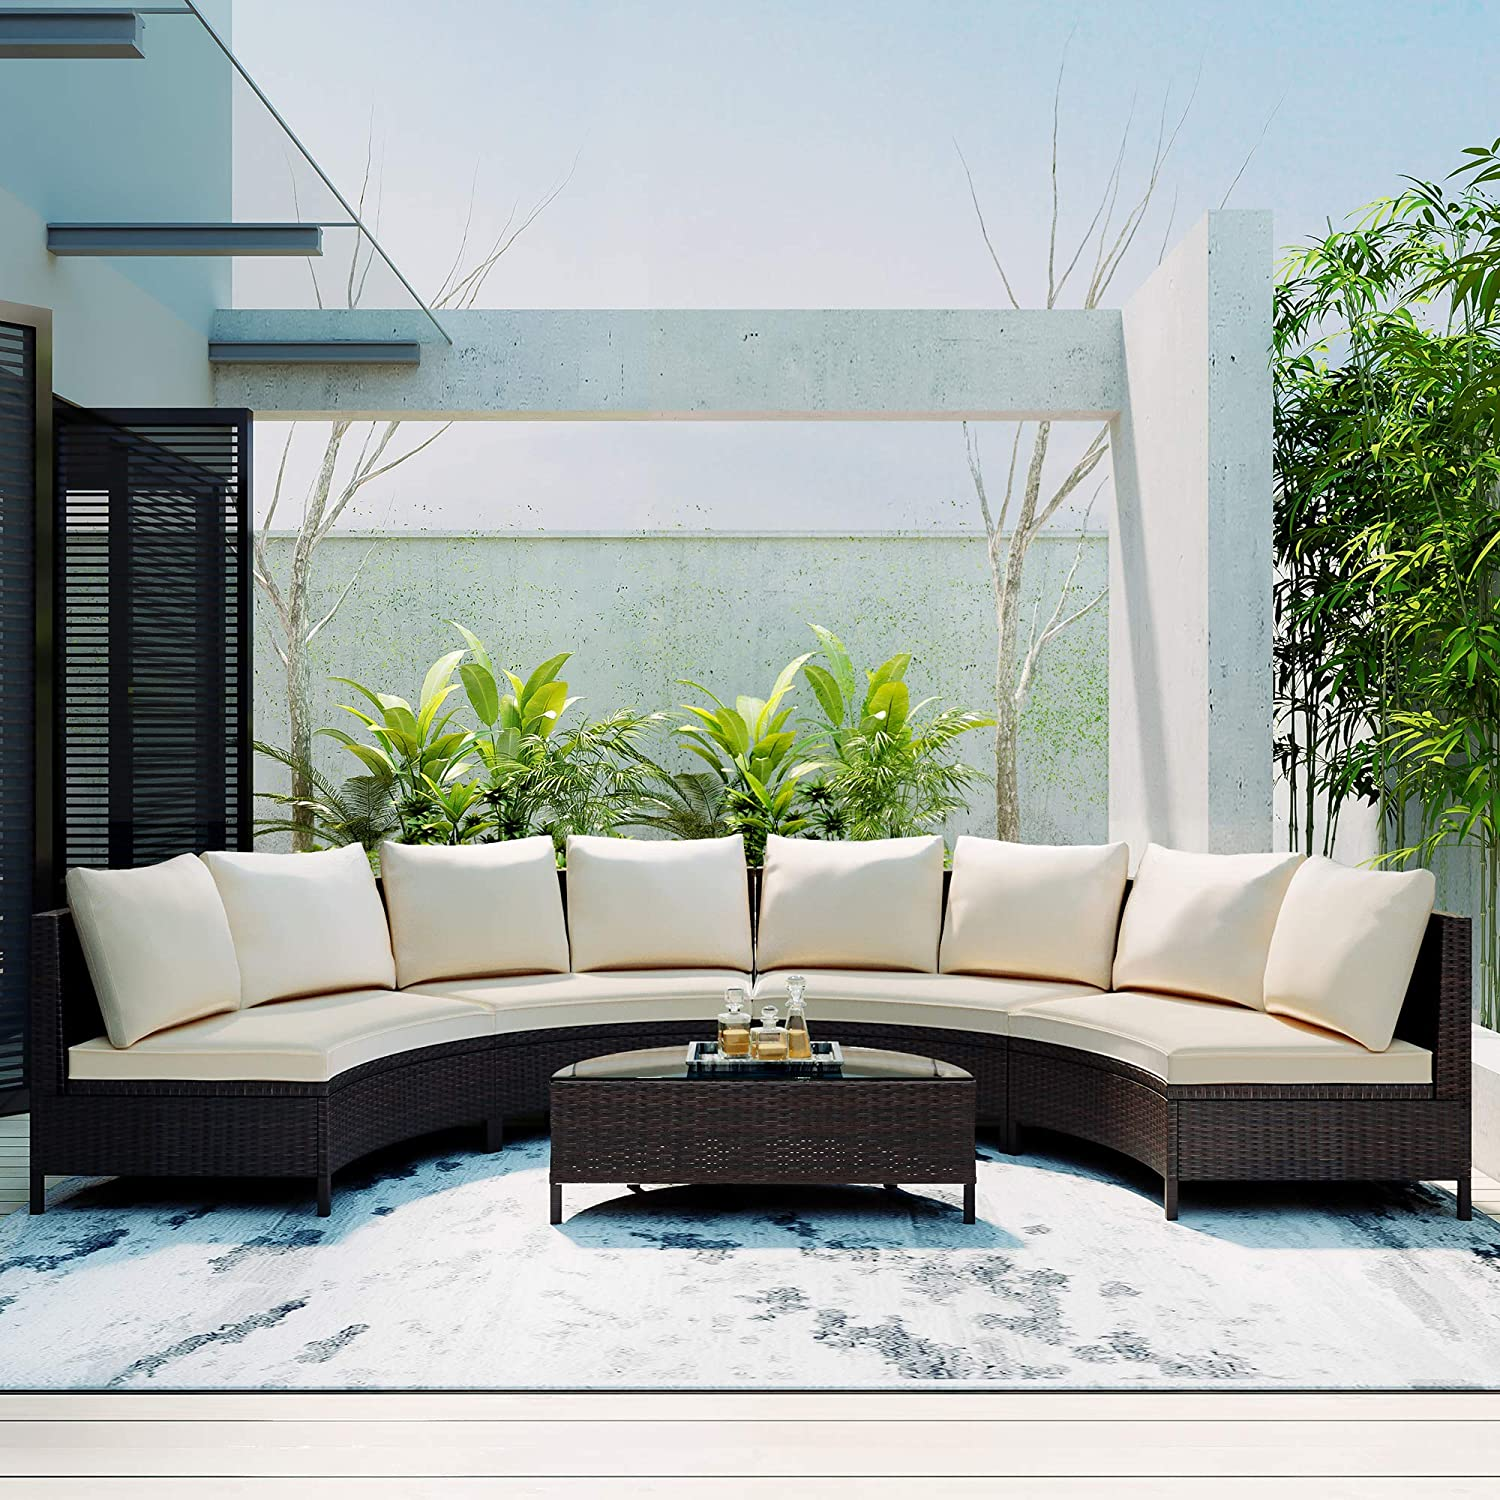 Inventory cleanup selling sale 5 Pieces Outdoor Patio Sectional Max 89% OFF Set Furniture Half-Moon Sofa Se